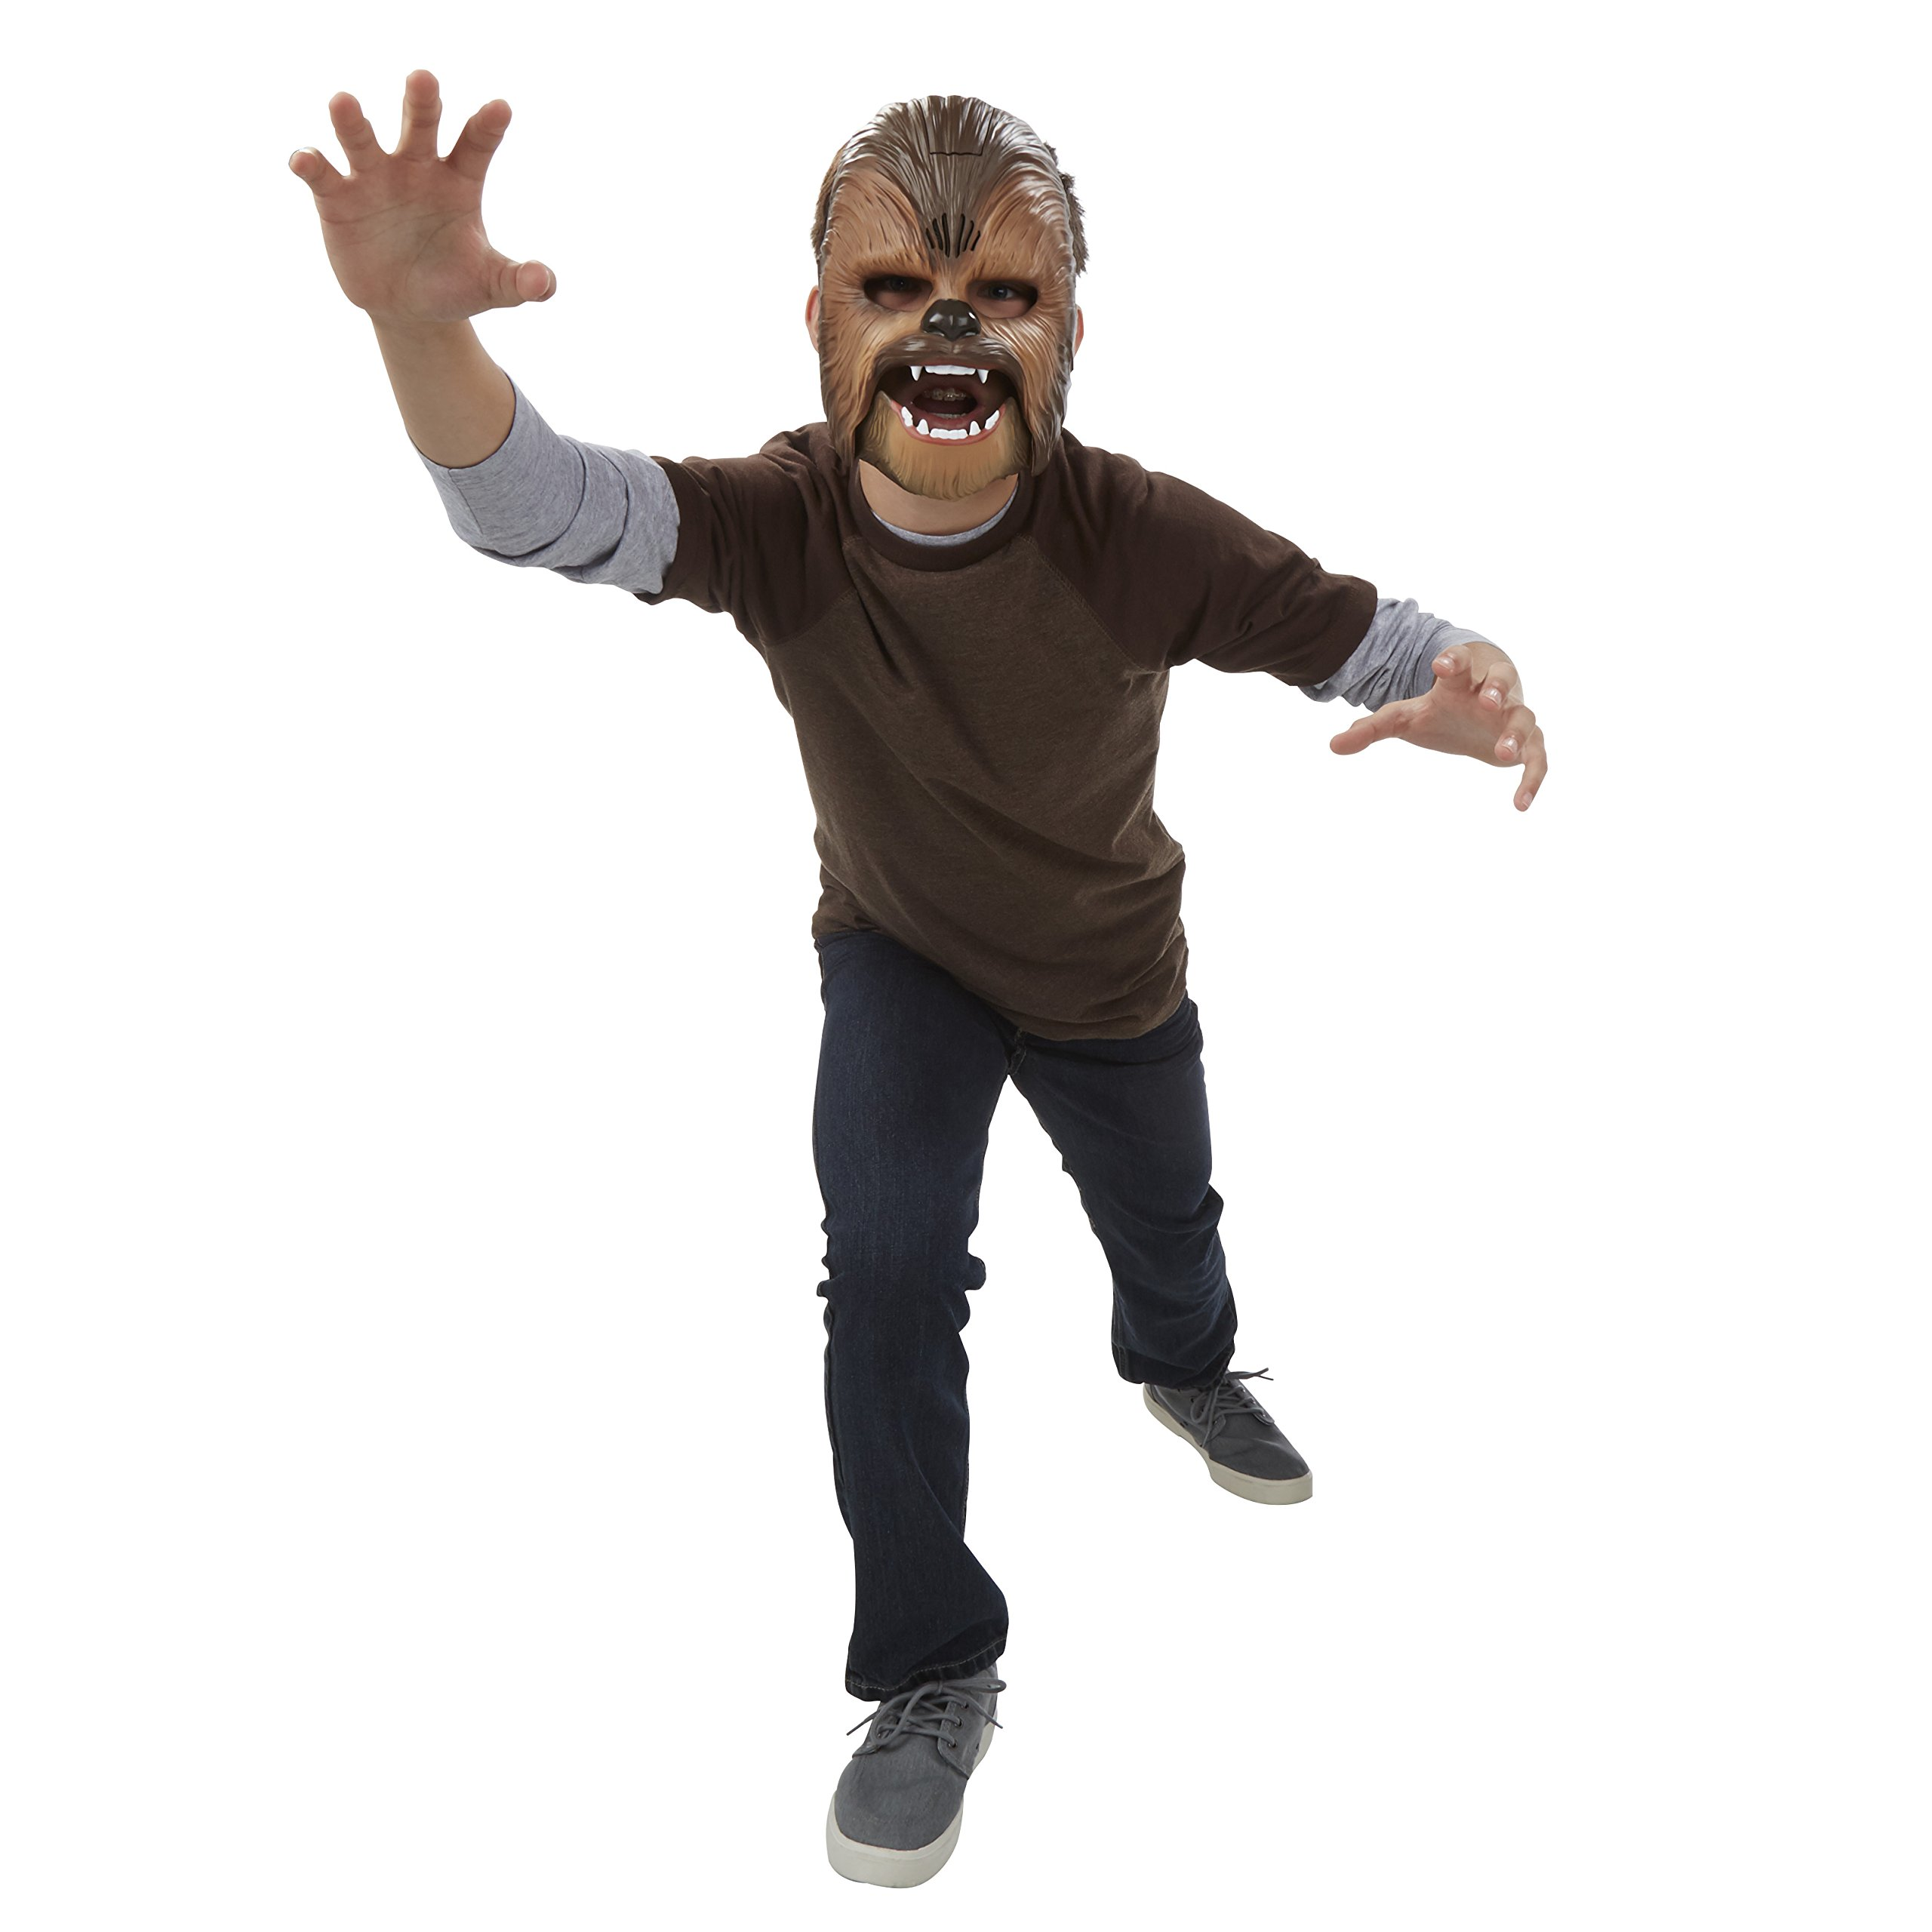 Star Wars Movie Roaring Chewbacca Wookiee Sounds Mask, Ages 5 and up (Amazon Exclusive) by Star Wars (Image #5)